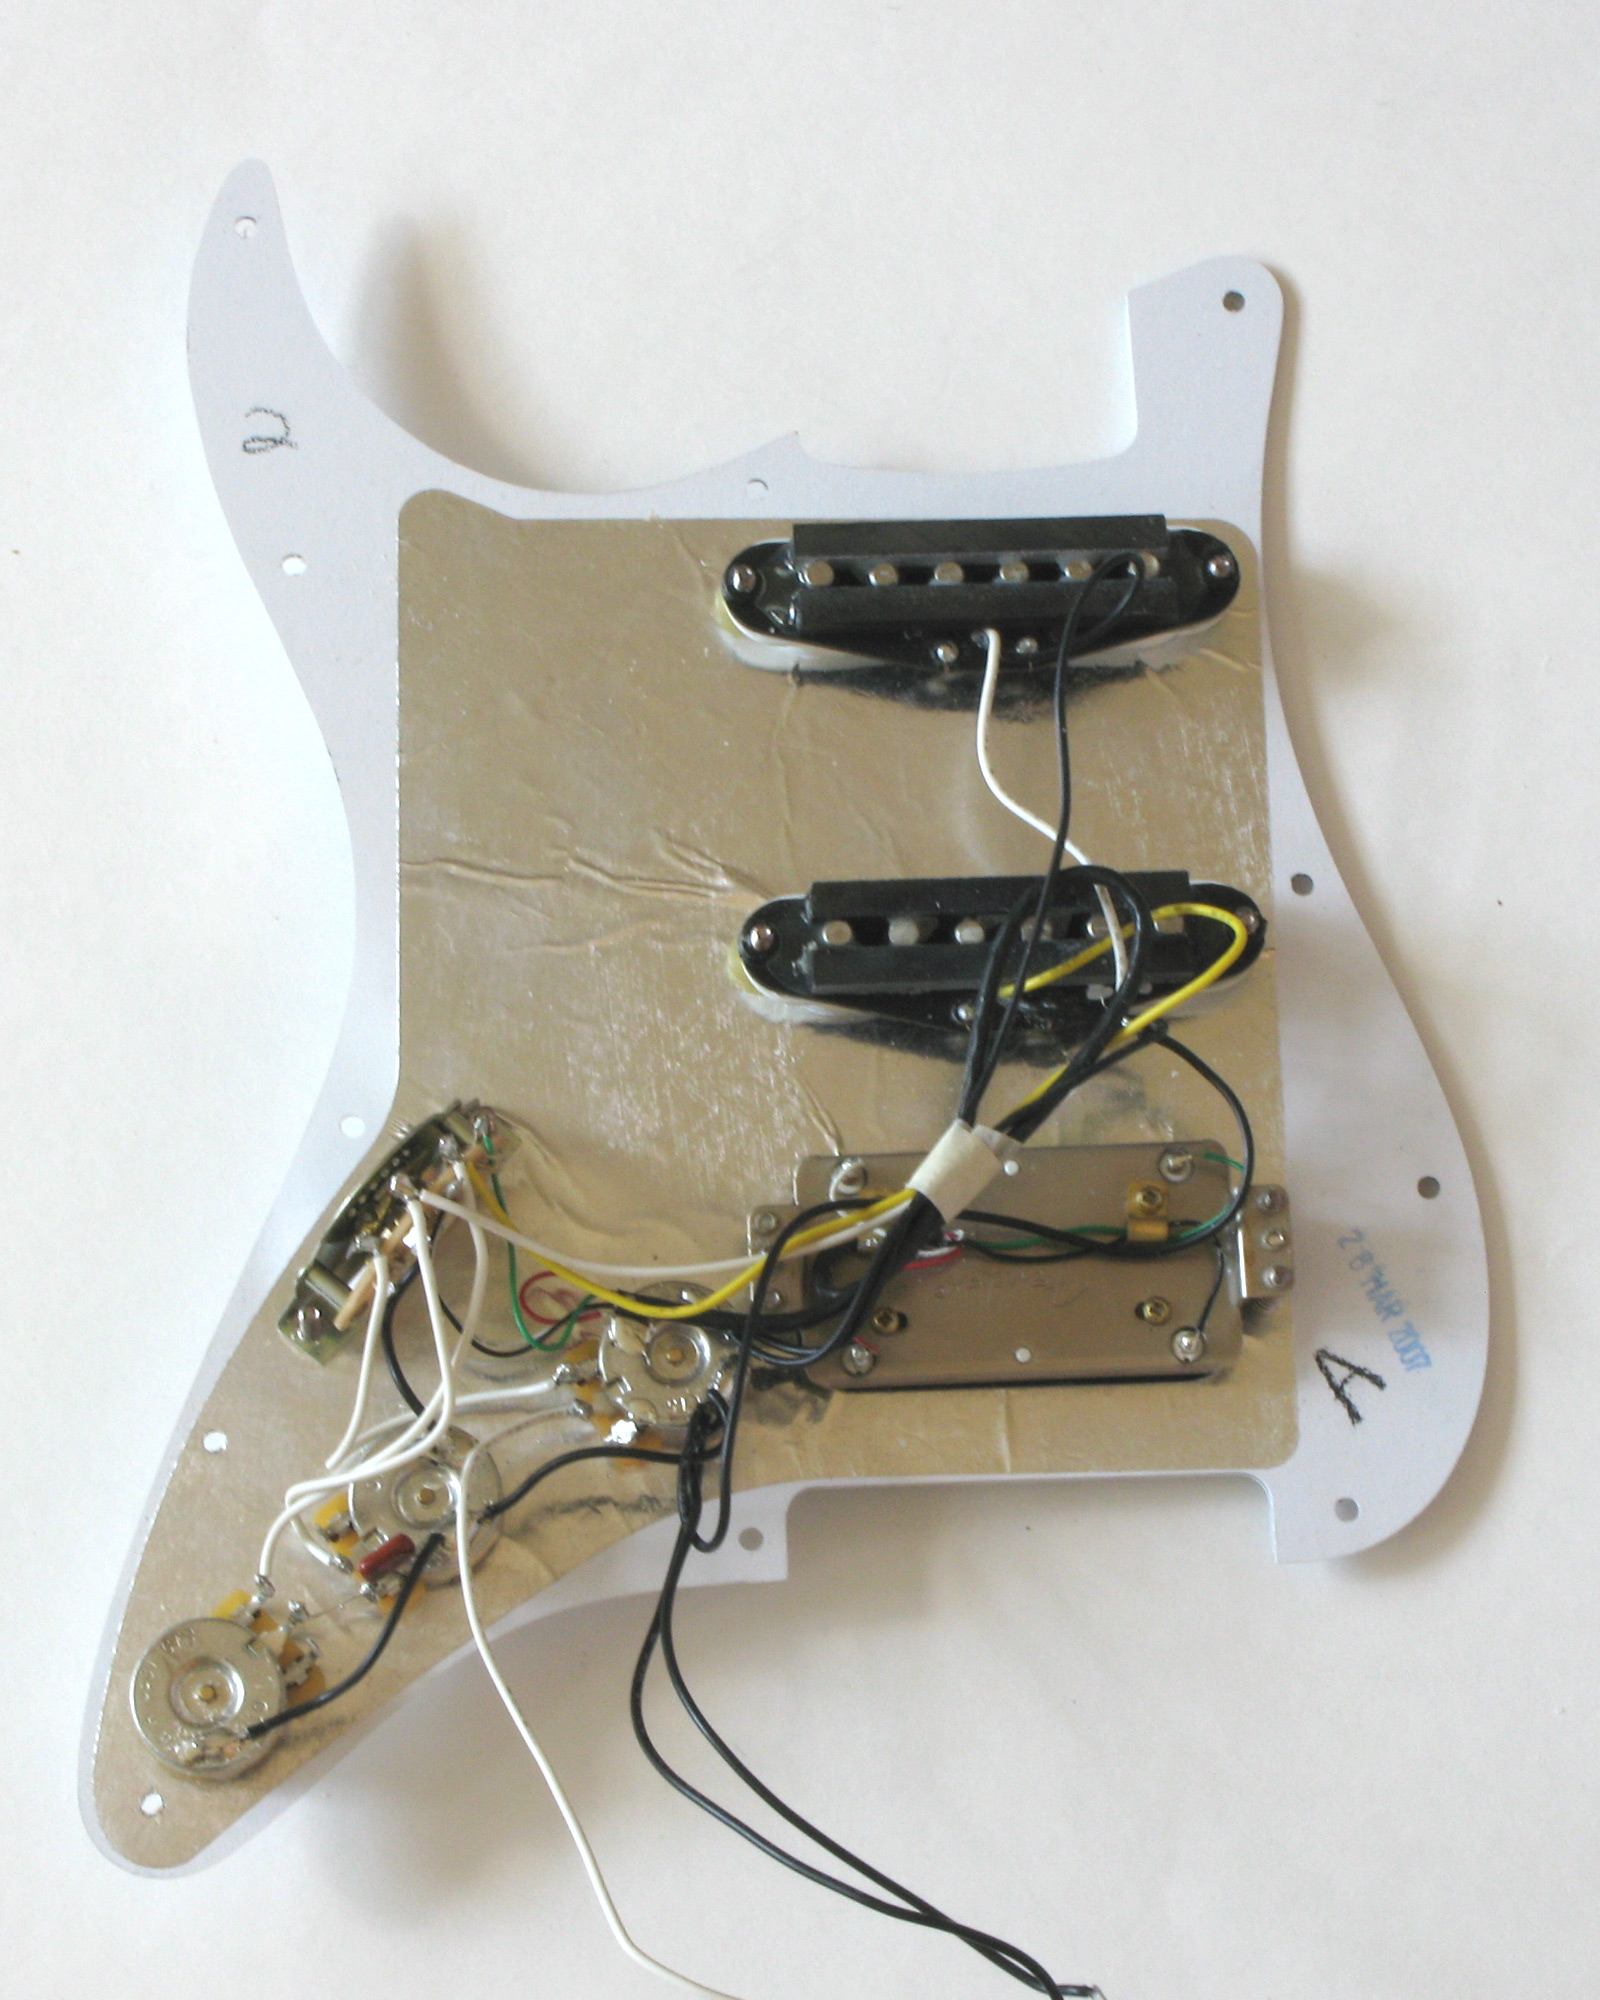 Fender Stratocaster Mexican Hss Pickguard Wiring Diagram - Fender Strat Wiring Diagram